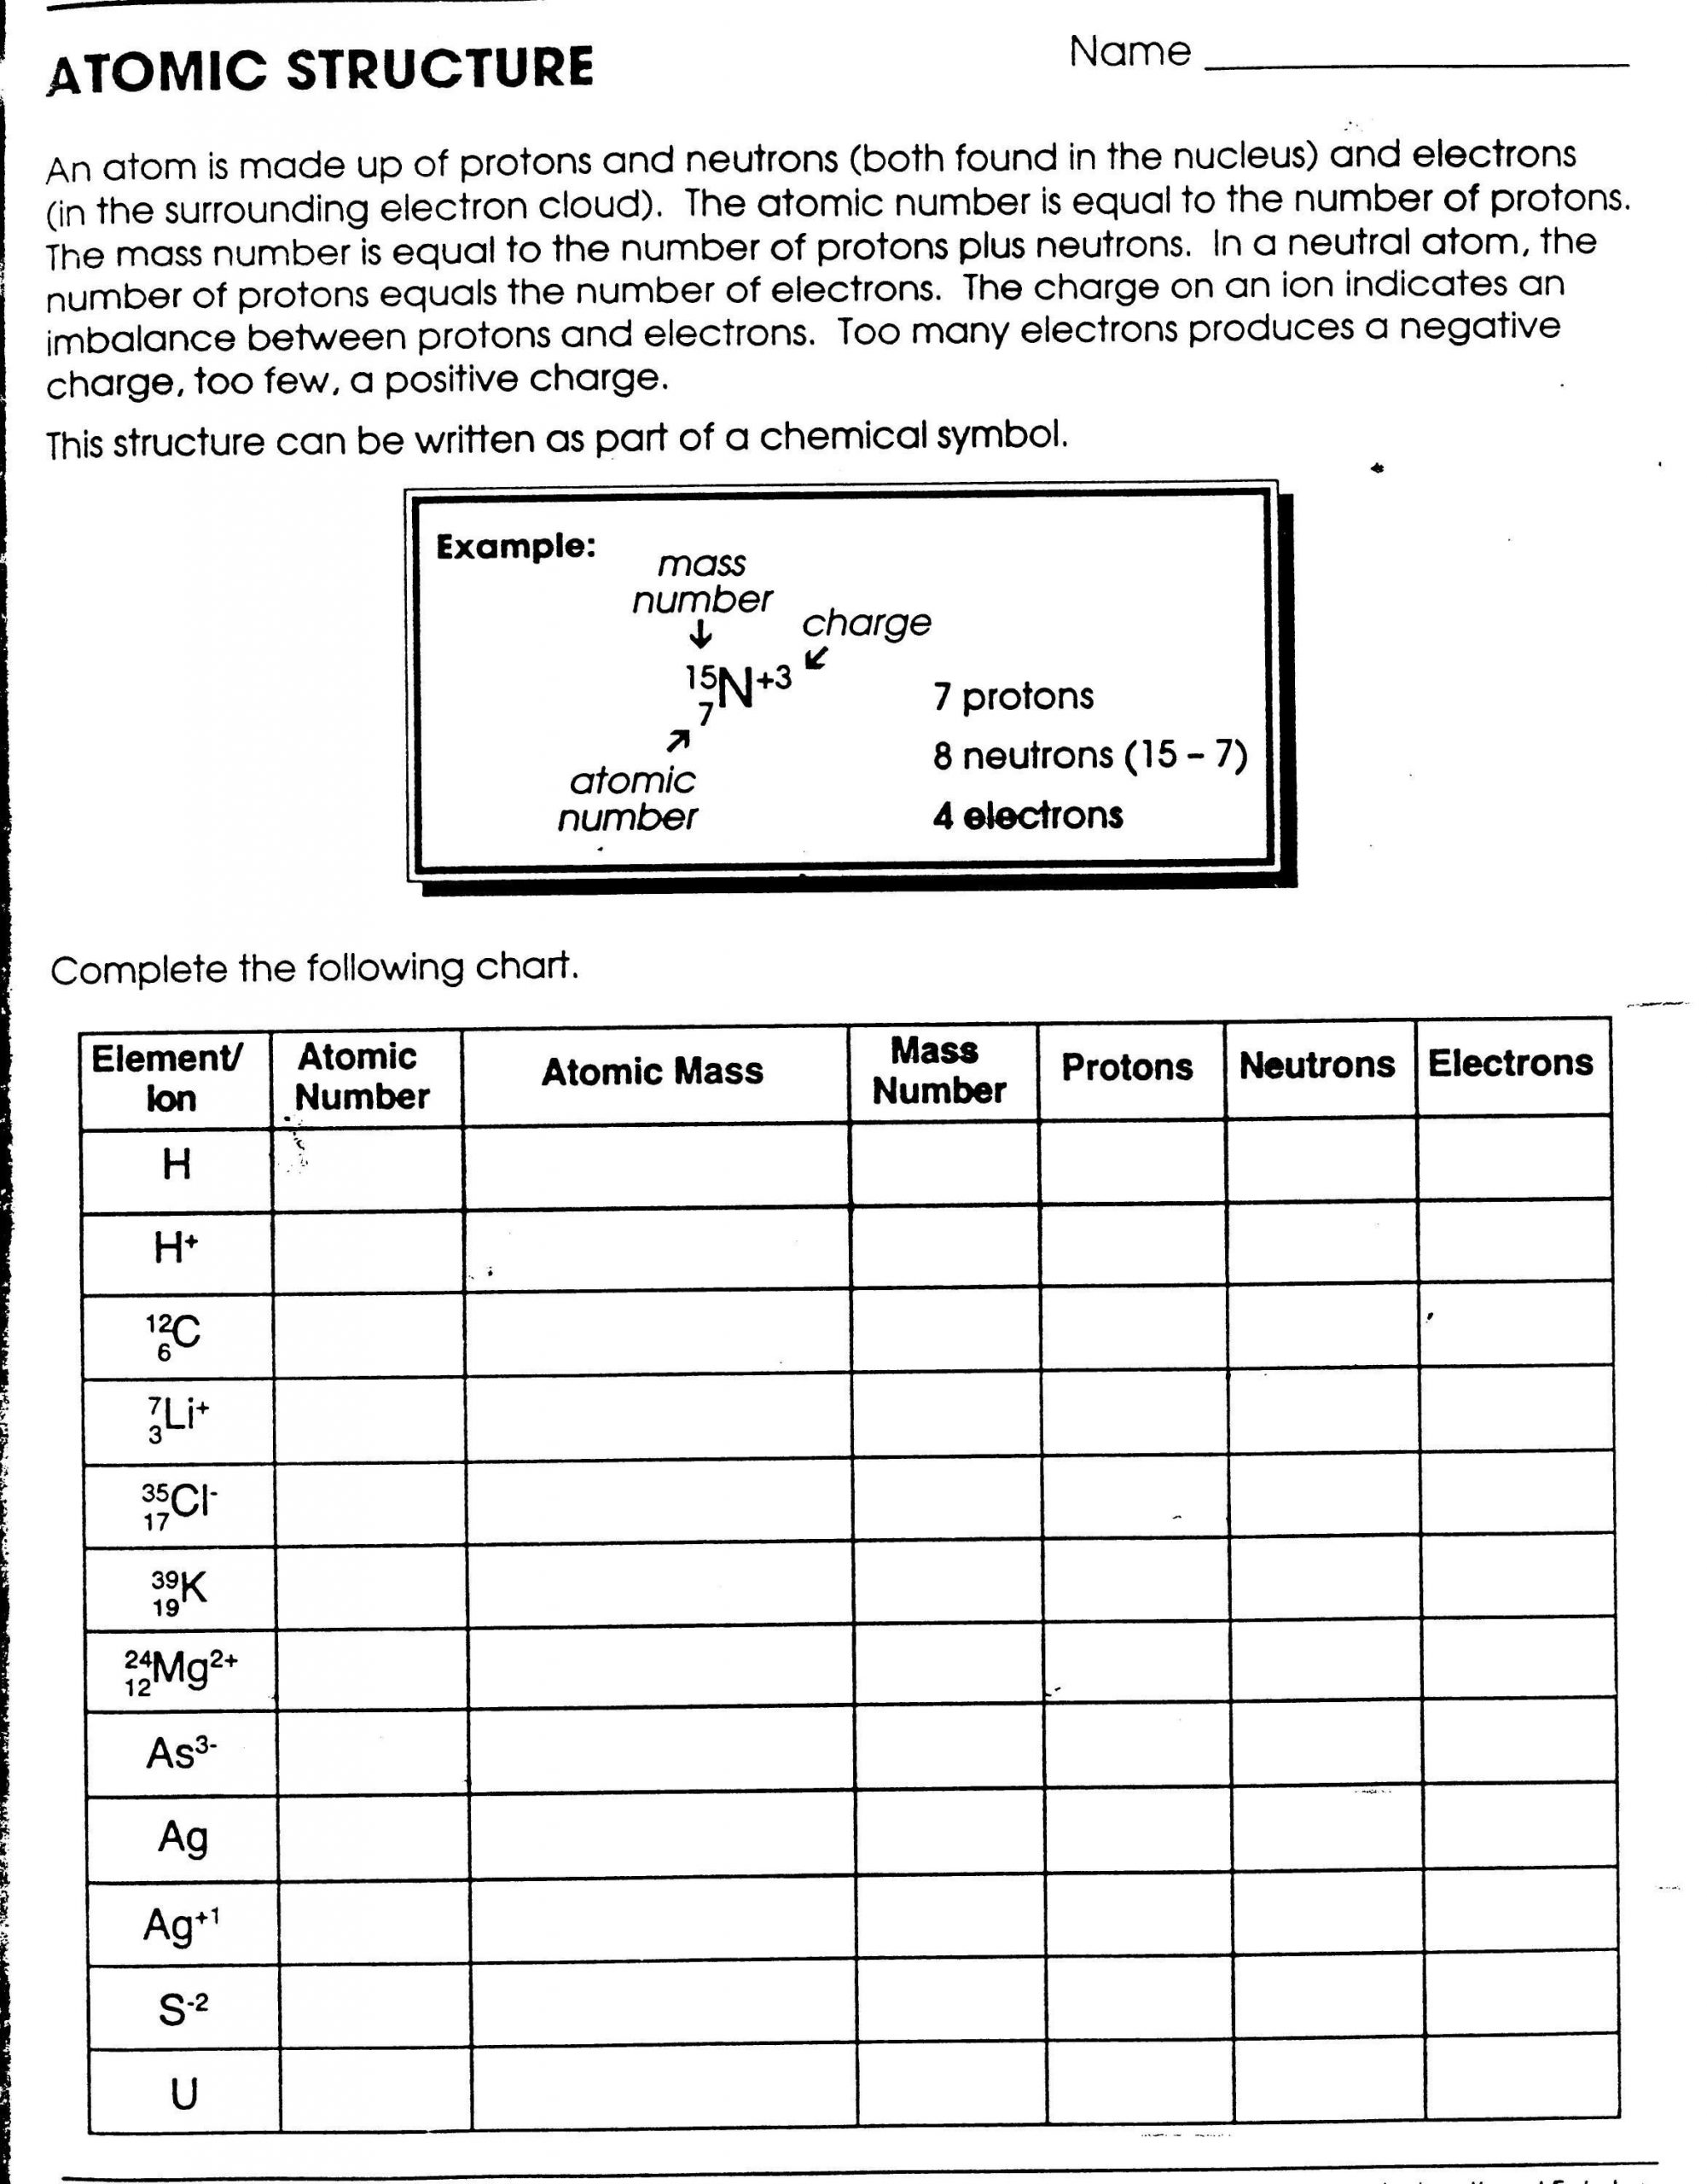 Atomic Structure Worksheet Answers Key Printables atomic Structure Worksheet Gozoneguide